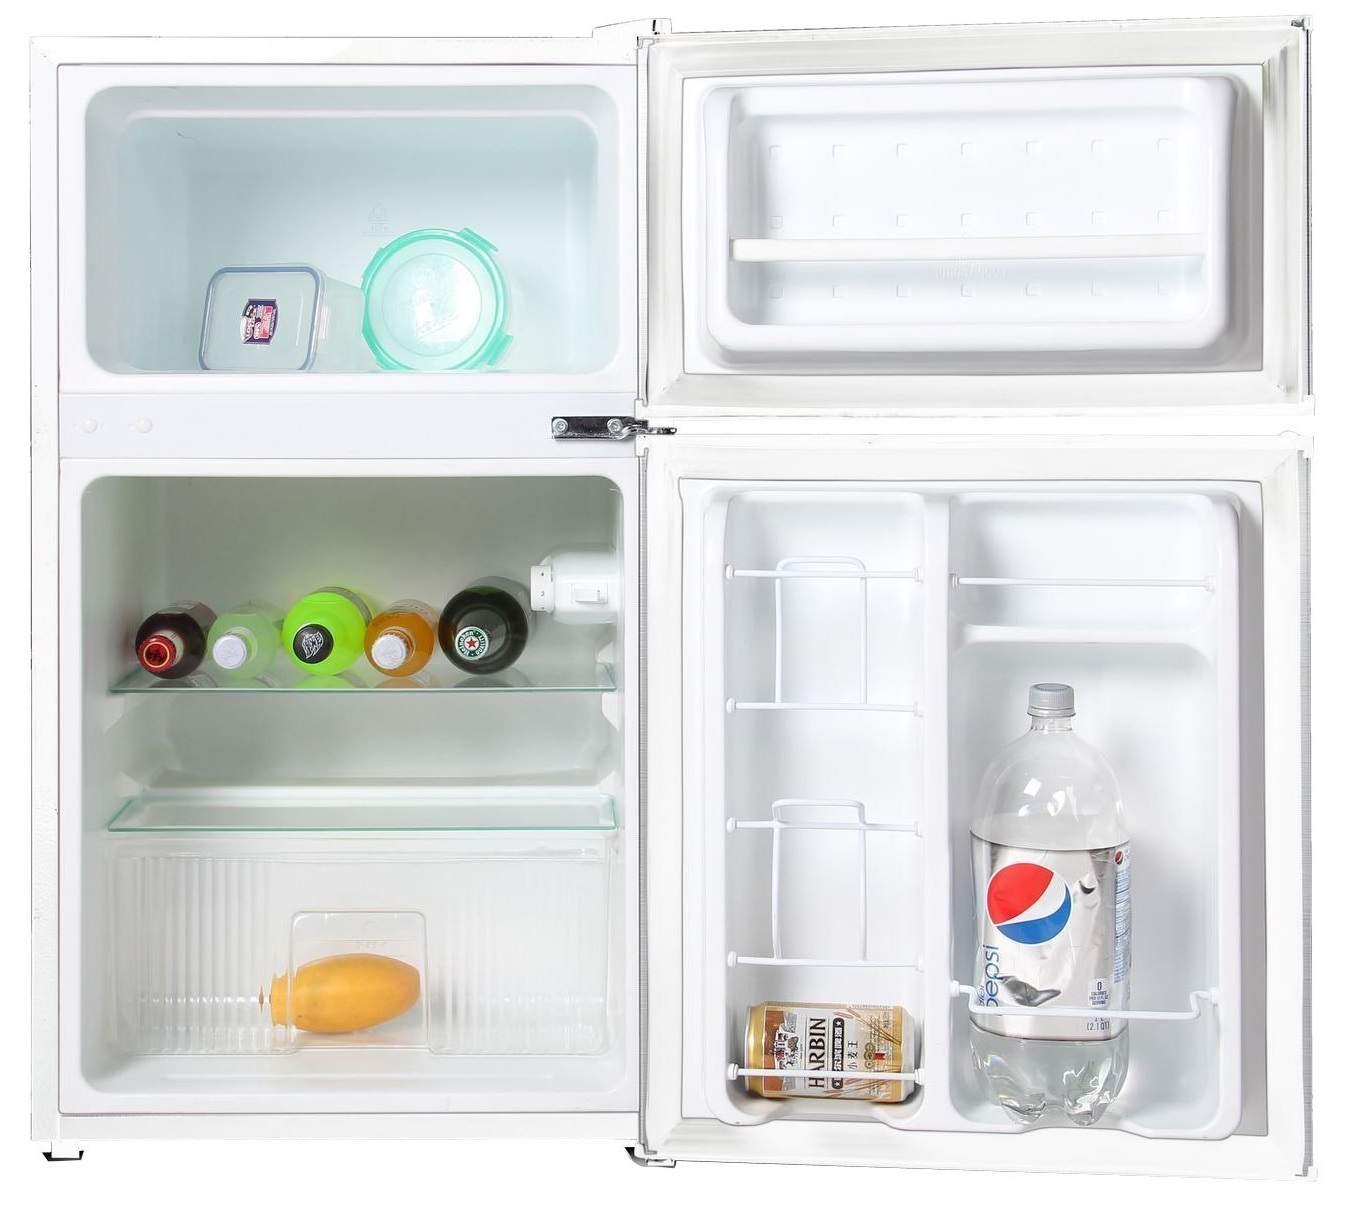 Midea WHD-113FW1 Double Reversible Door Refrigerator and Freezer Review